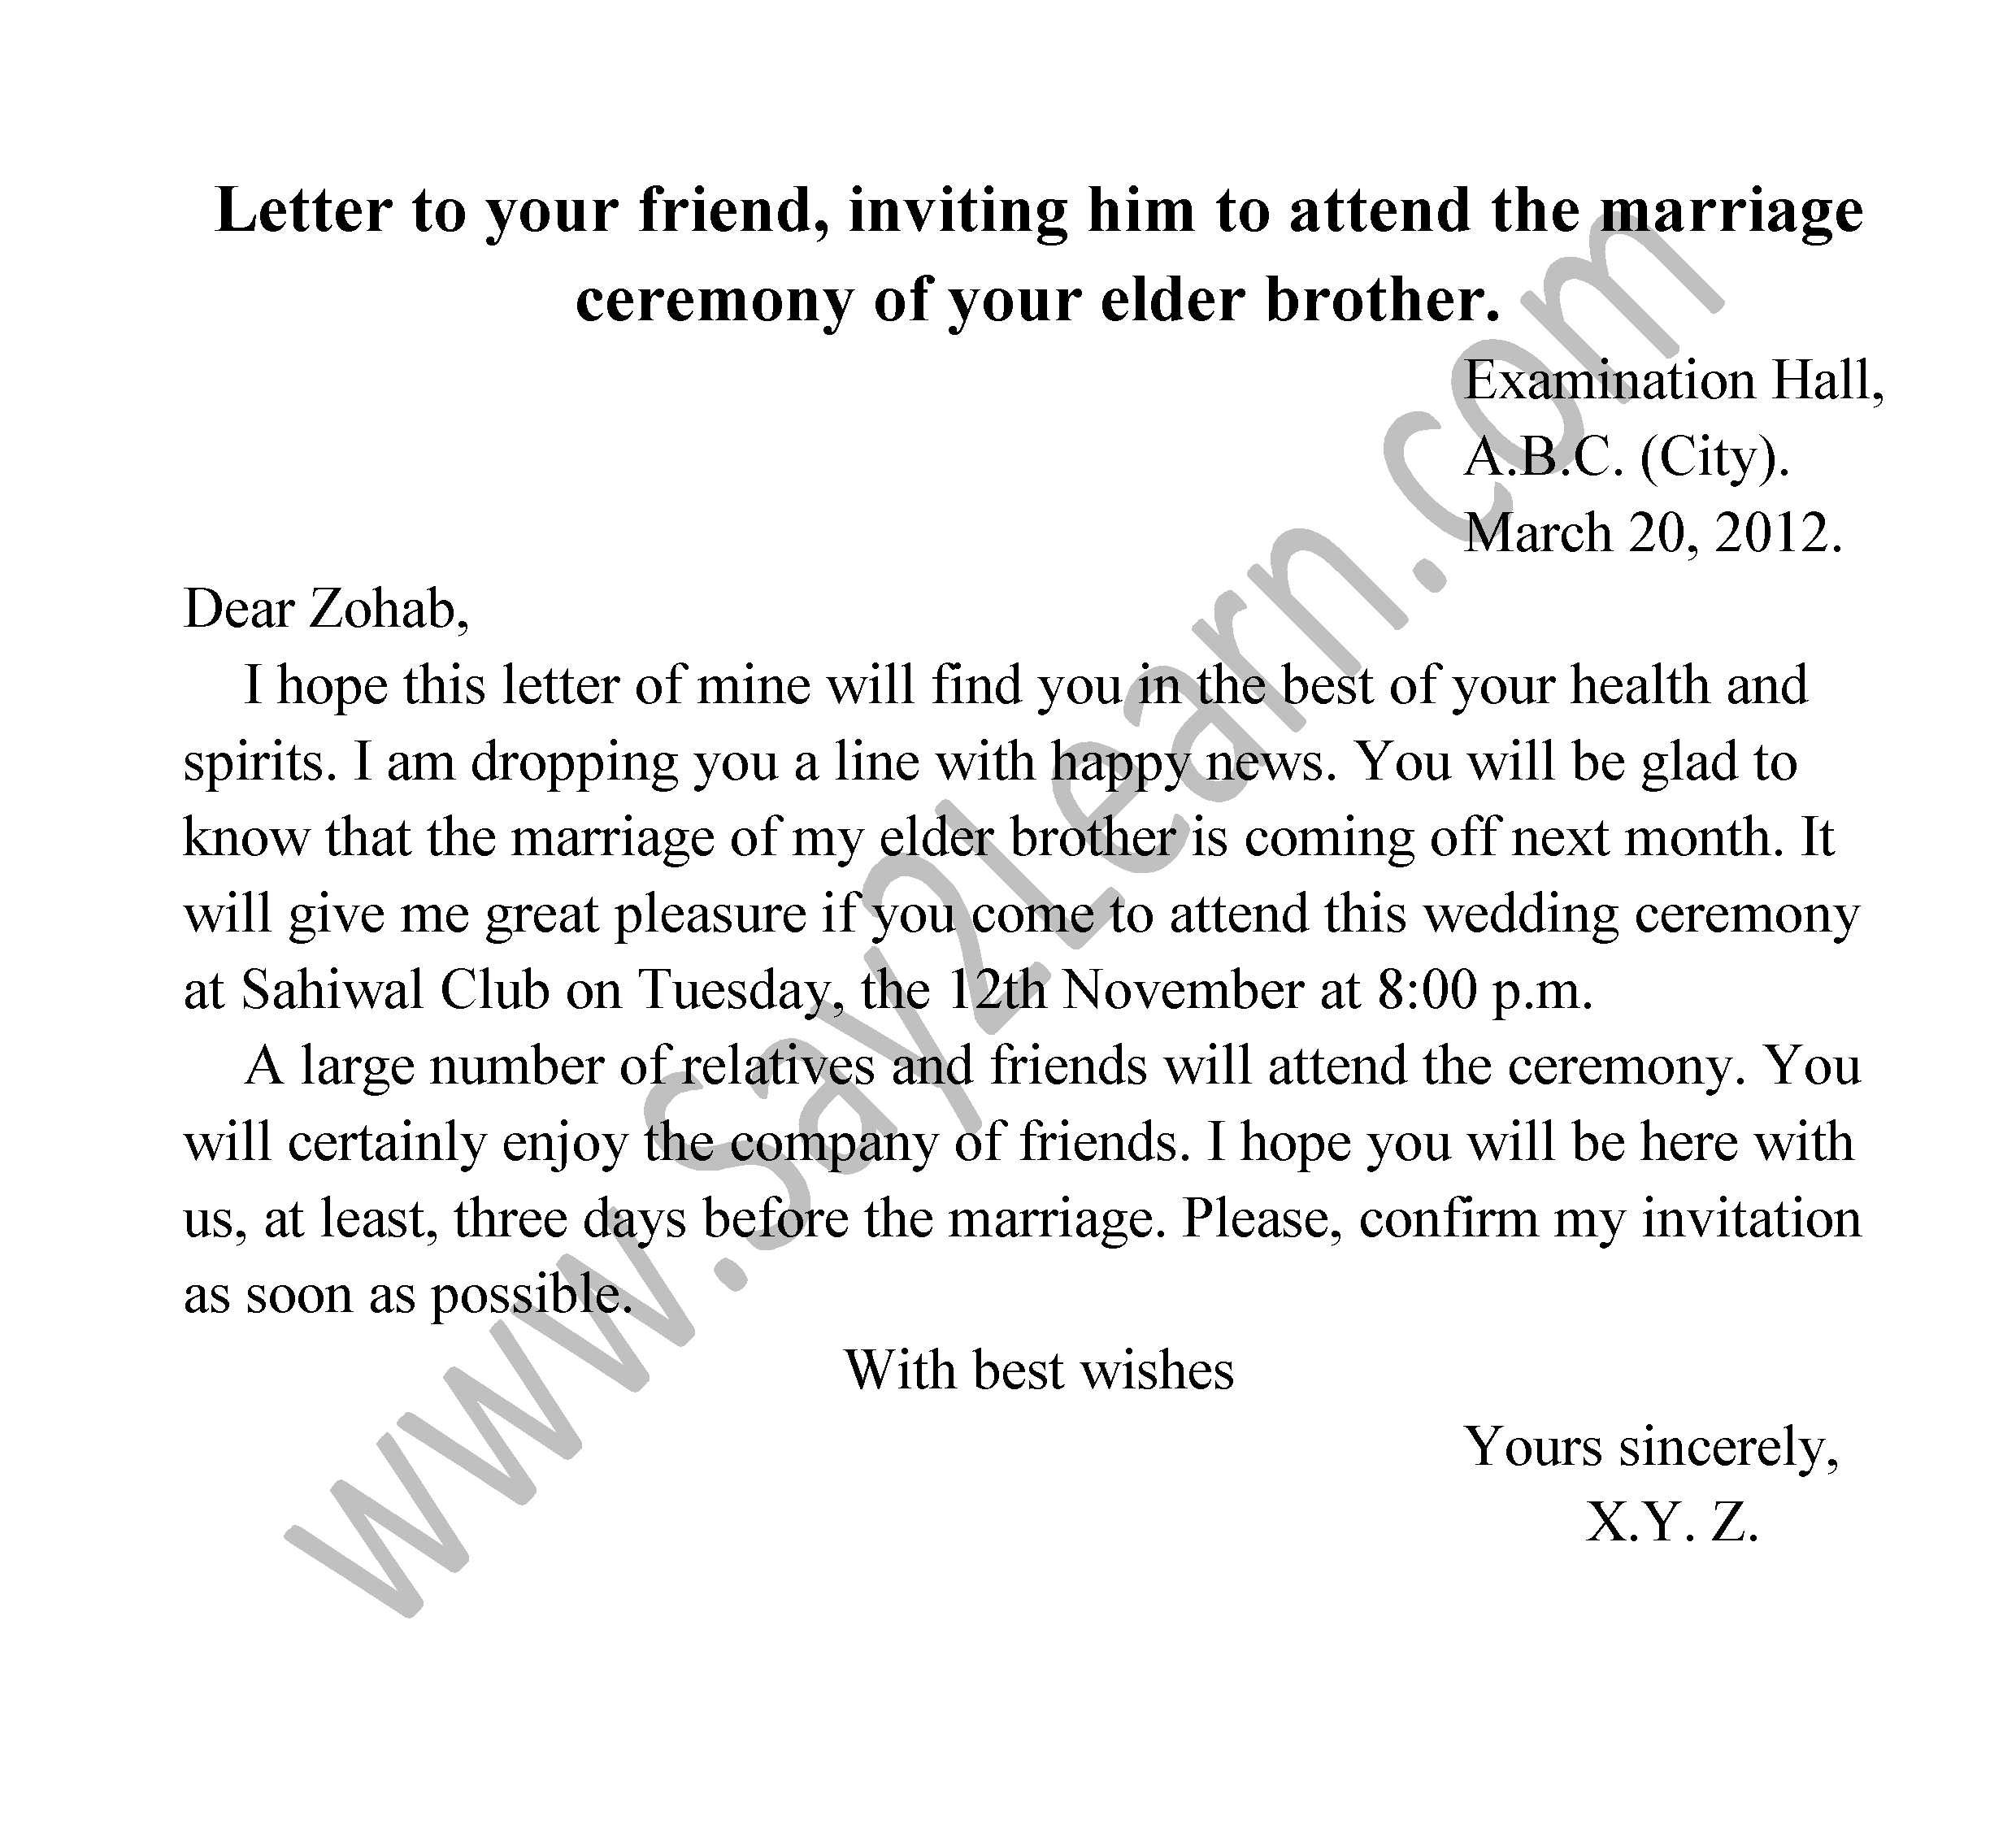 Invitation letter to your brother gallery invitation sample and invitation letter to your brother choice image invitation sample invitation letter to your brother gallery invitation stopboris Gallery